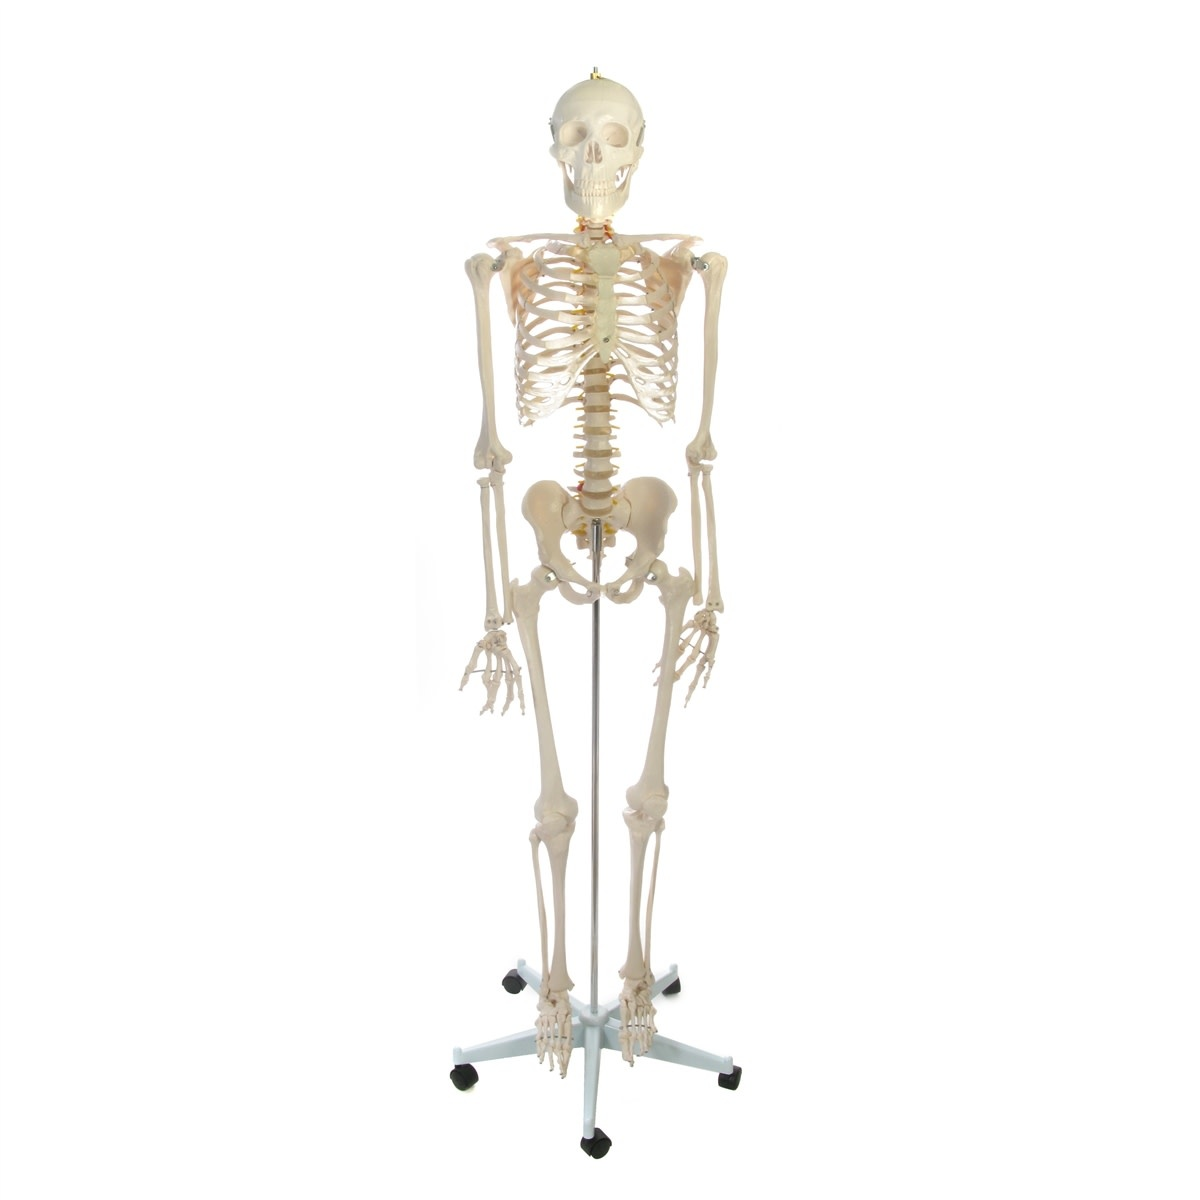 Just Sculpt Human Skeleton Life-size Plastic 66in